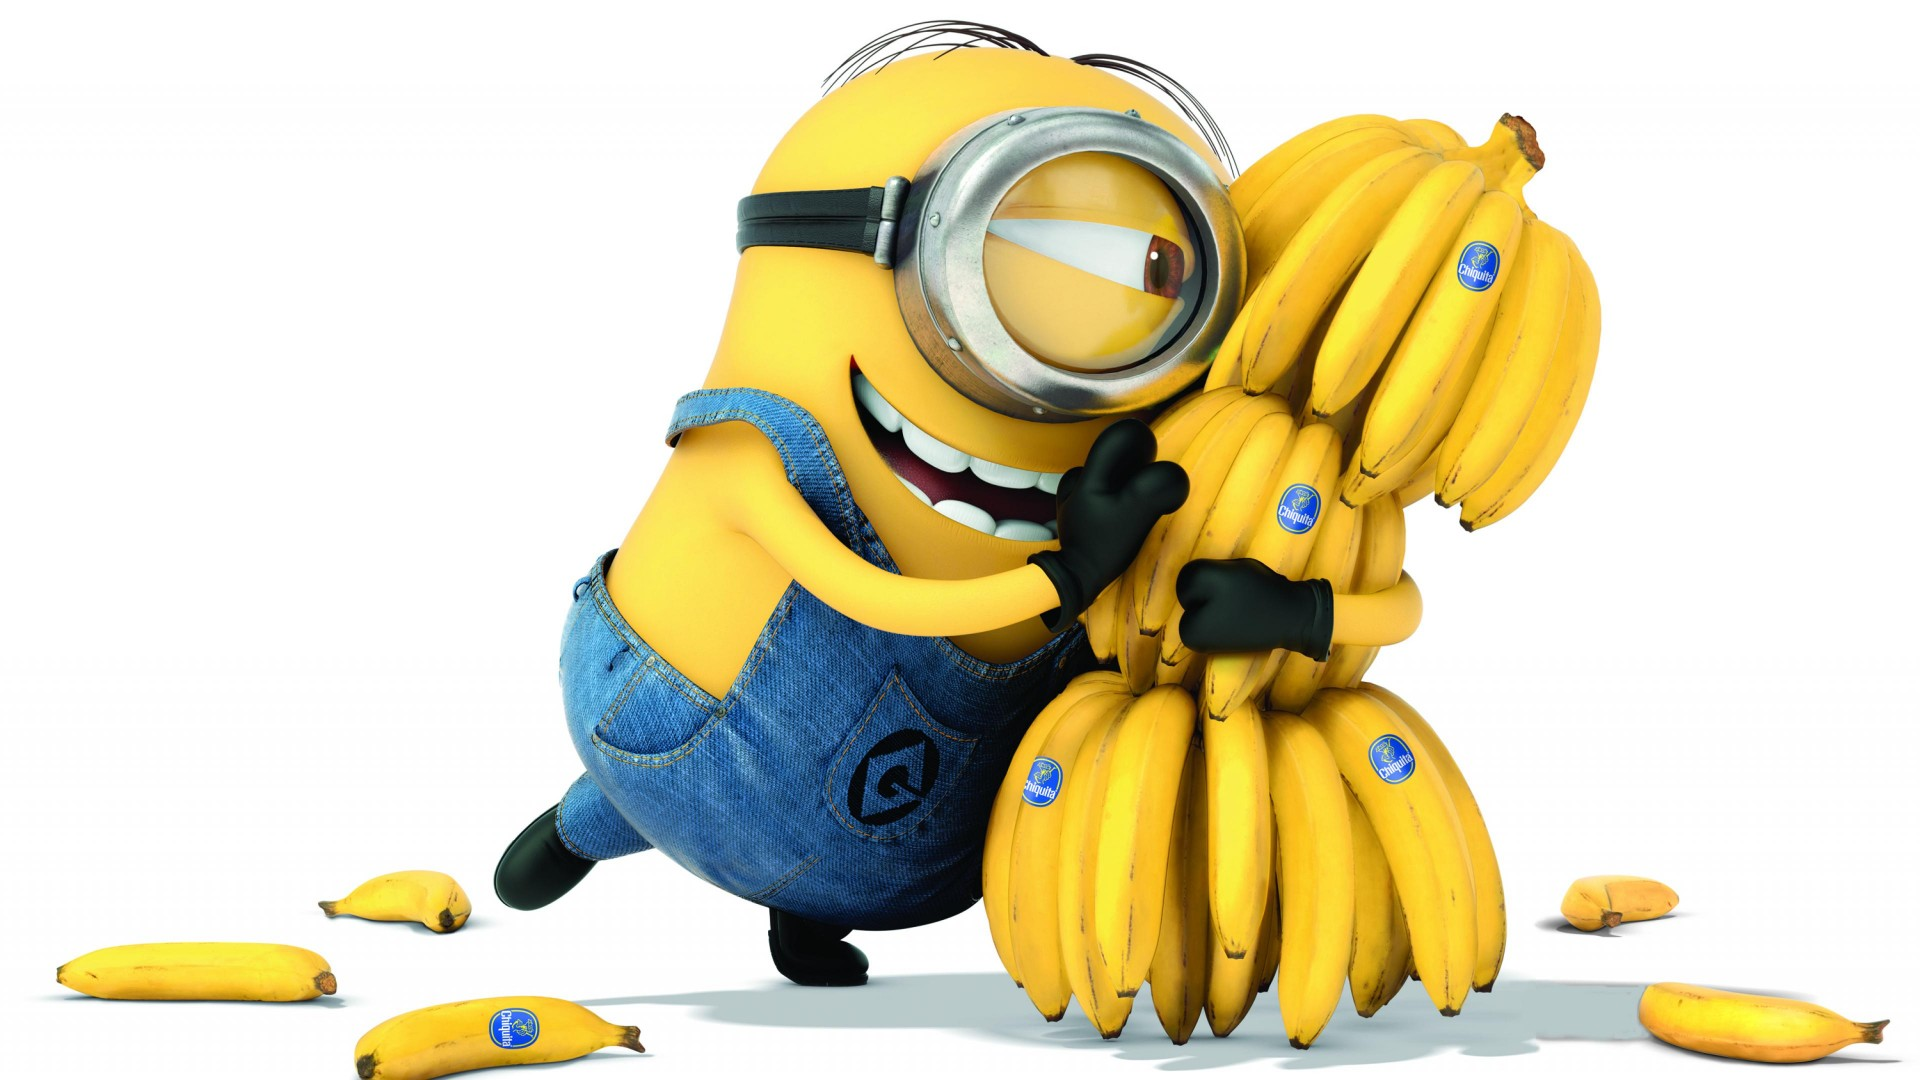 Wallpaper Minions 2015 Cartoon Movie Allison Janney Steve